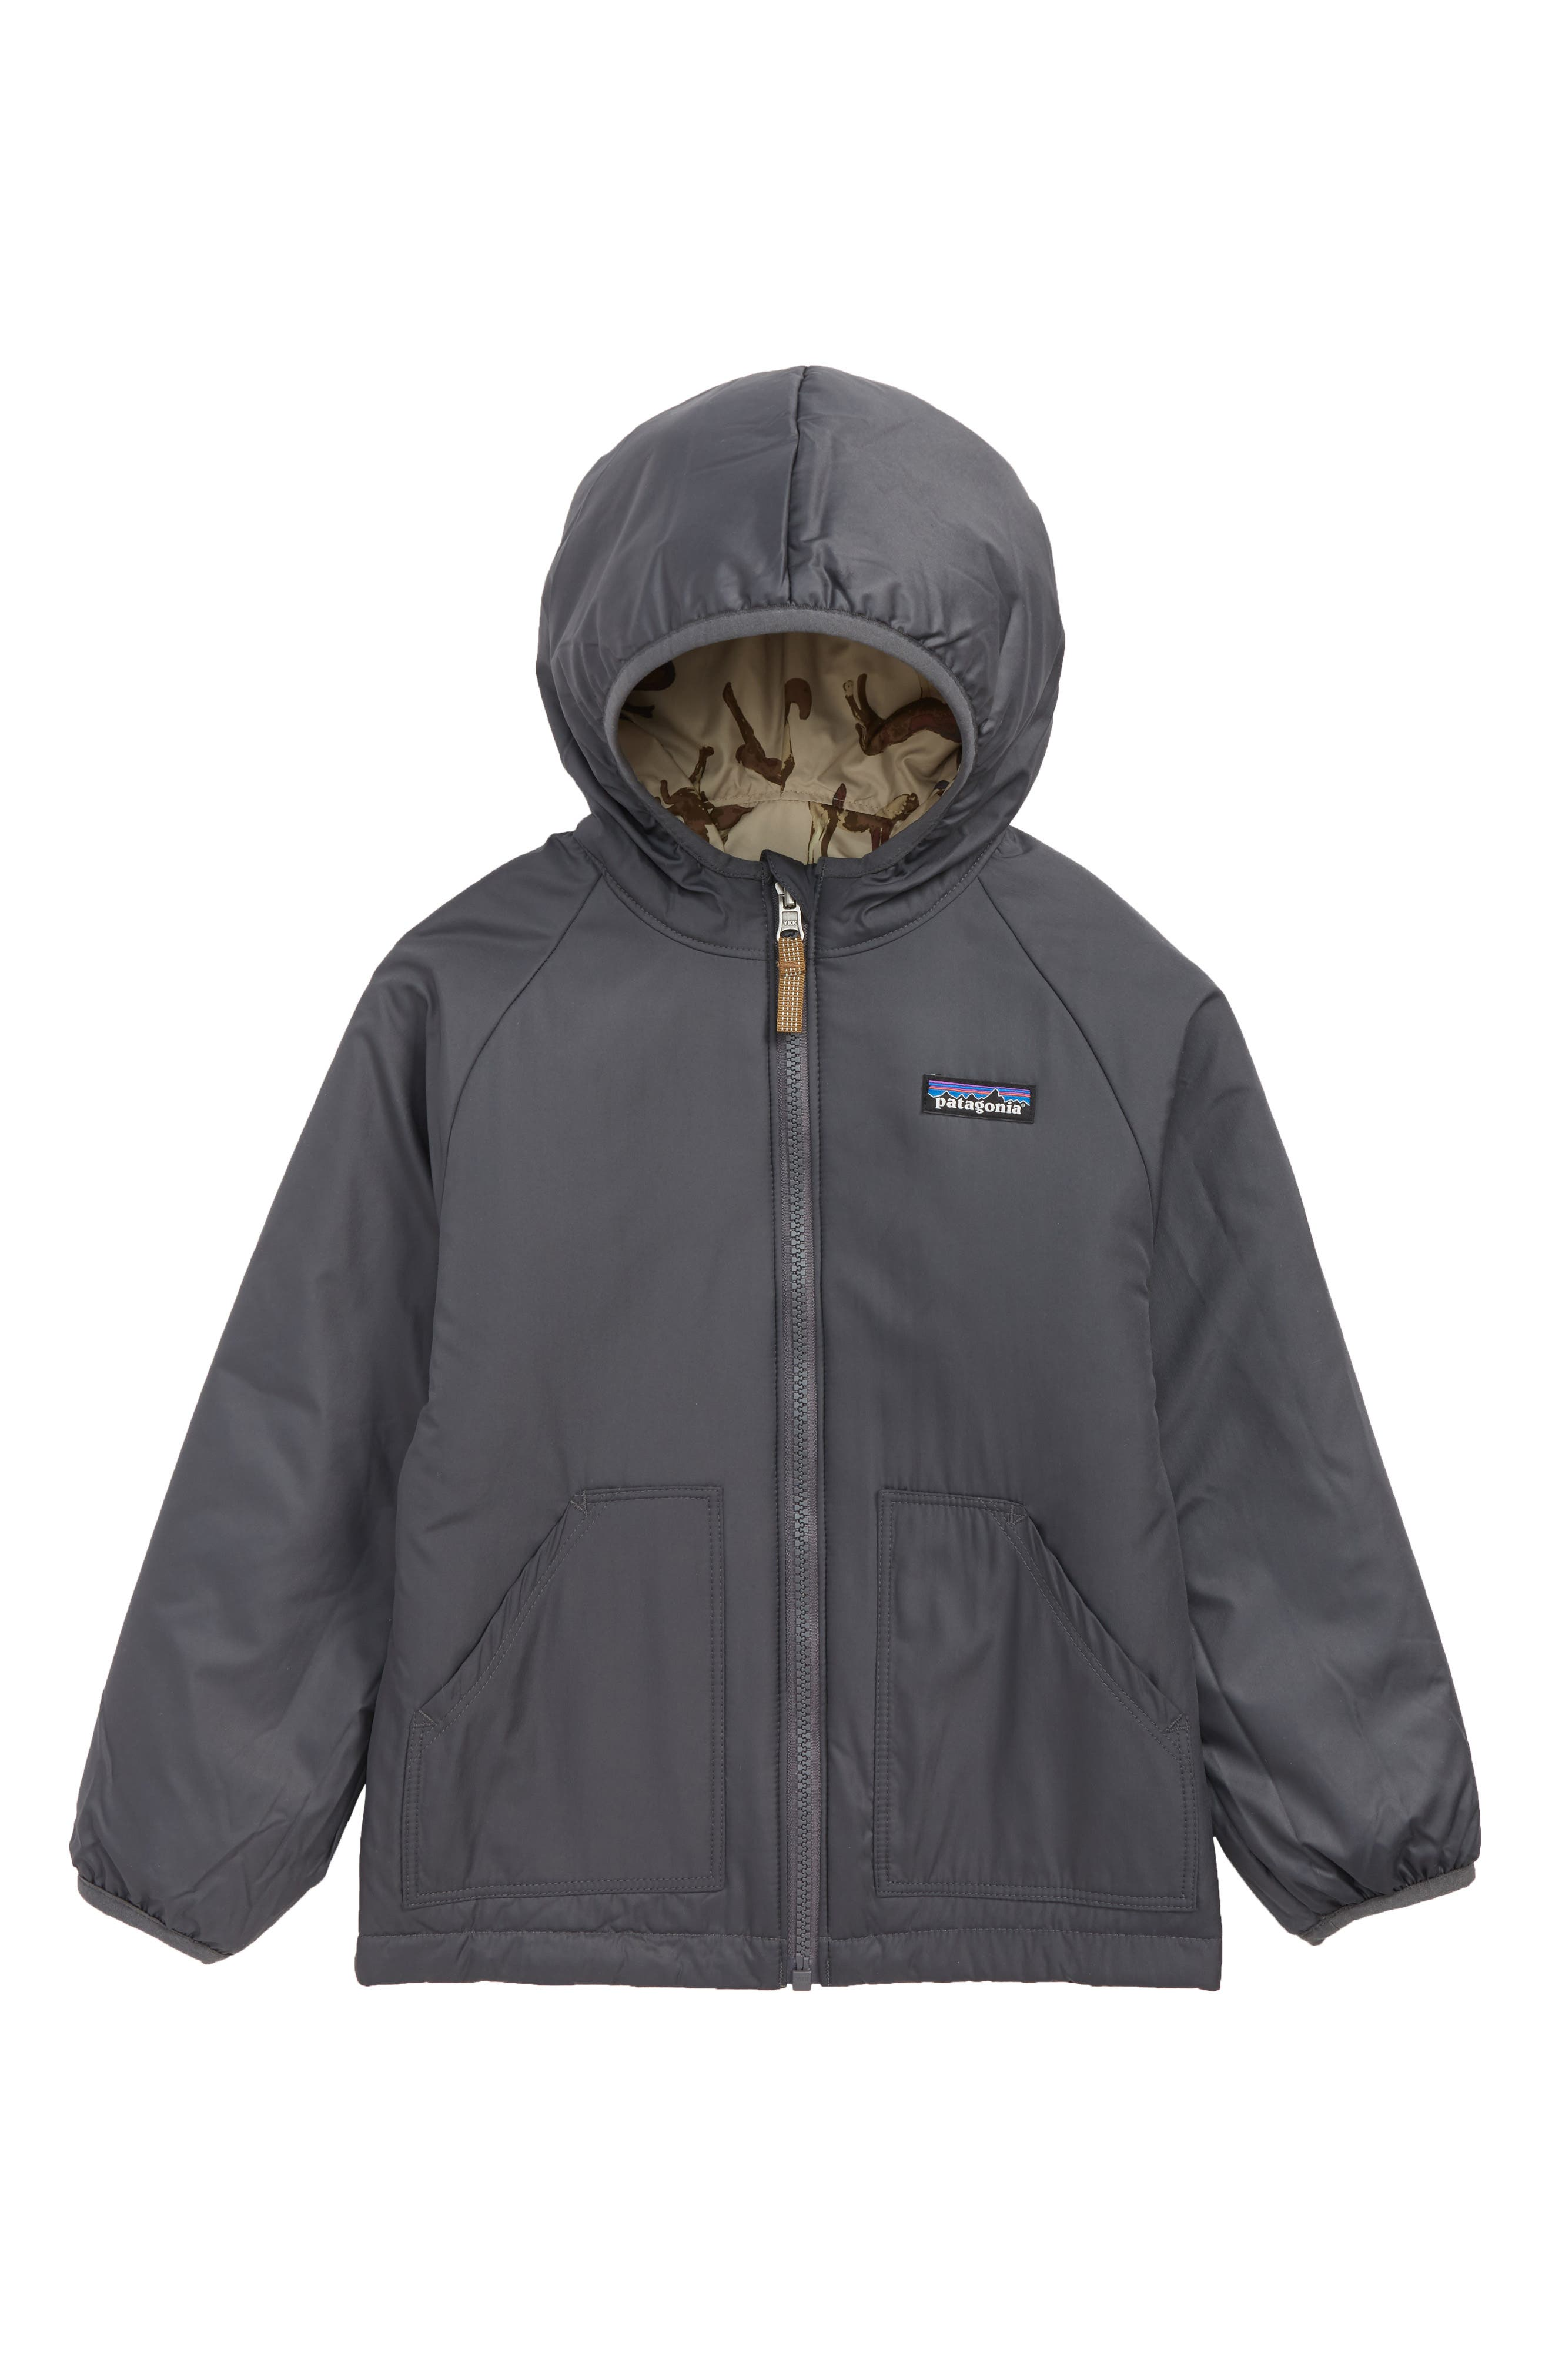 PATAGONIA, Puff Ball Water Resistant Thermolite<sup>®</sup> Insulated Reversible Jacket, Alternate thumbnail 2, color, 200